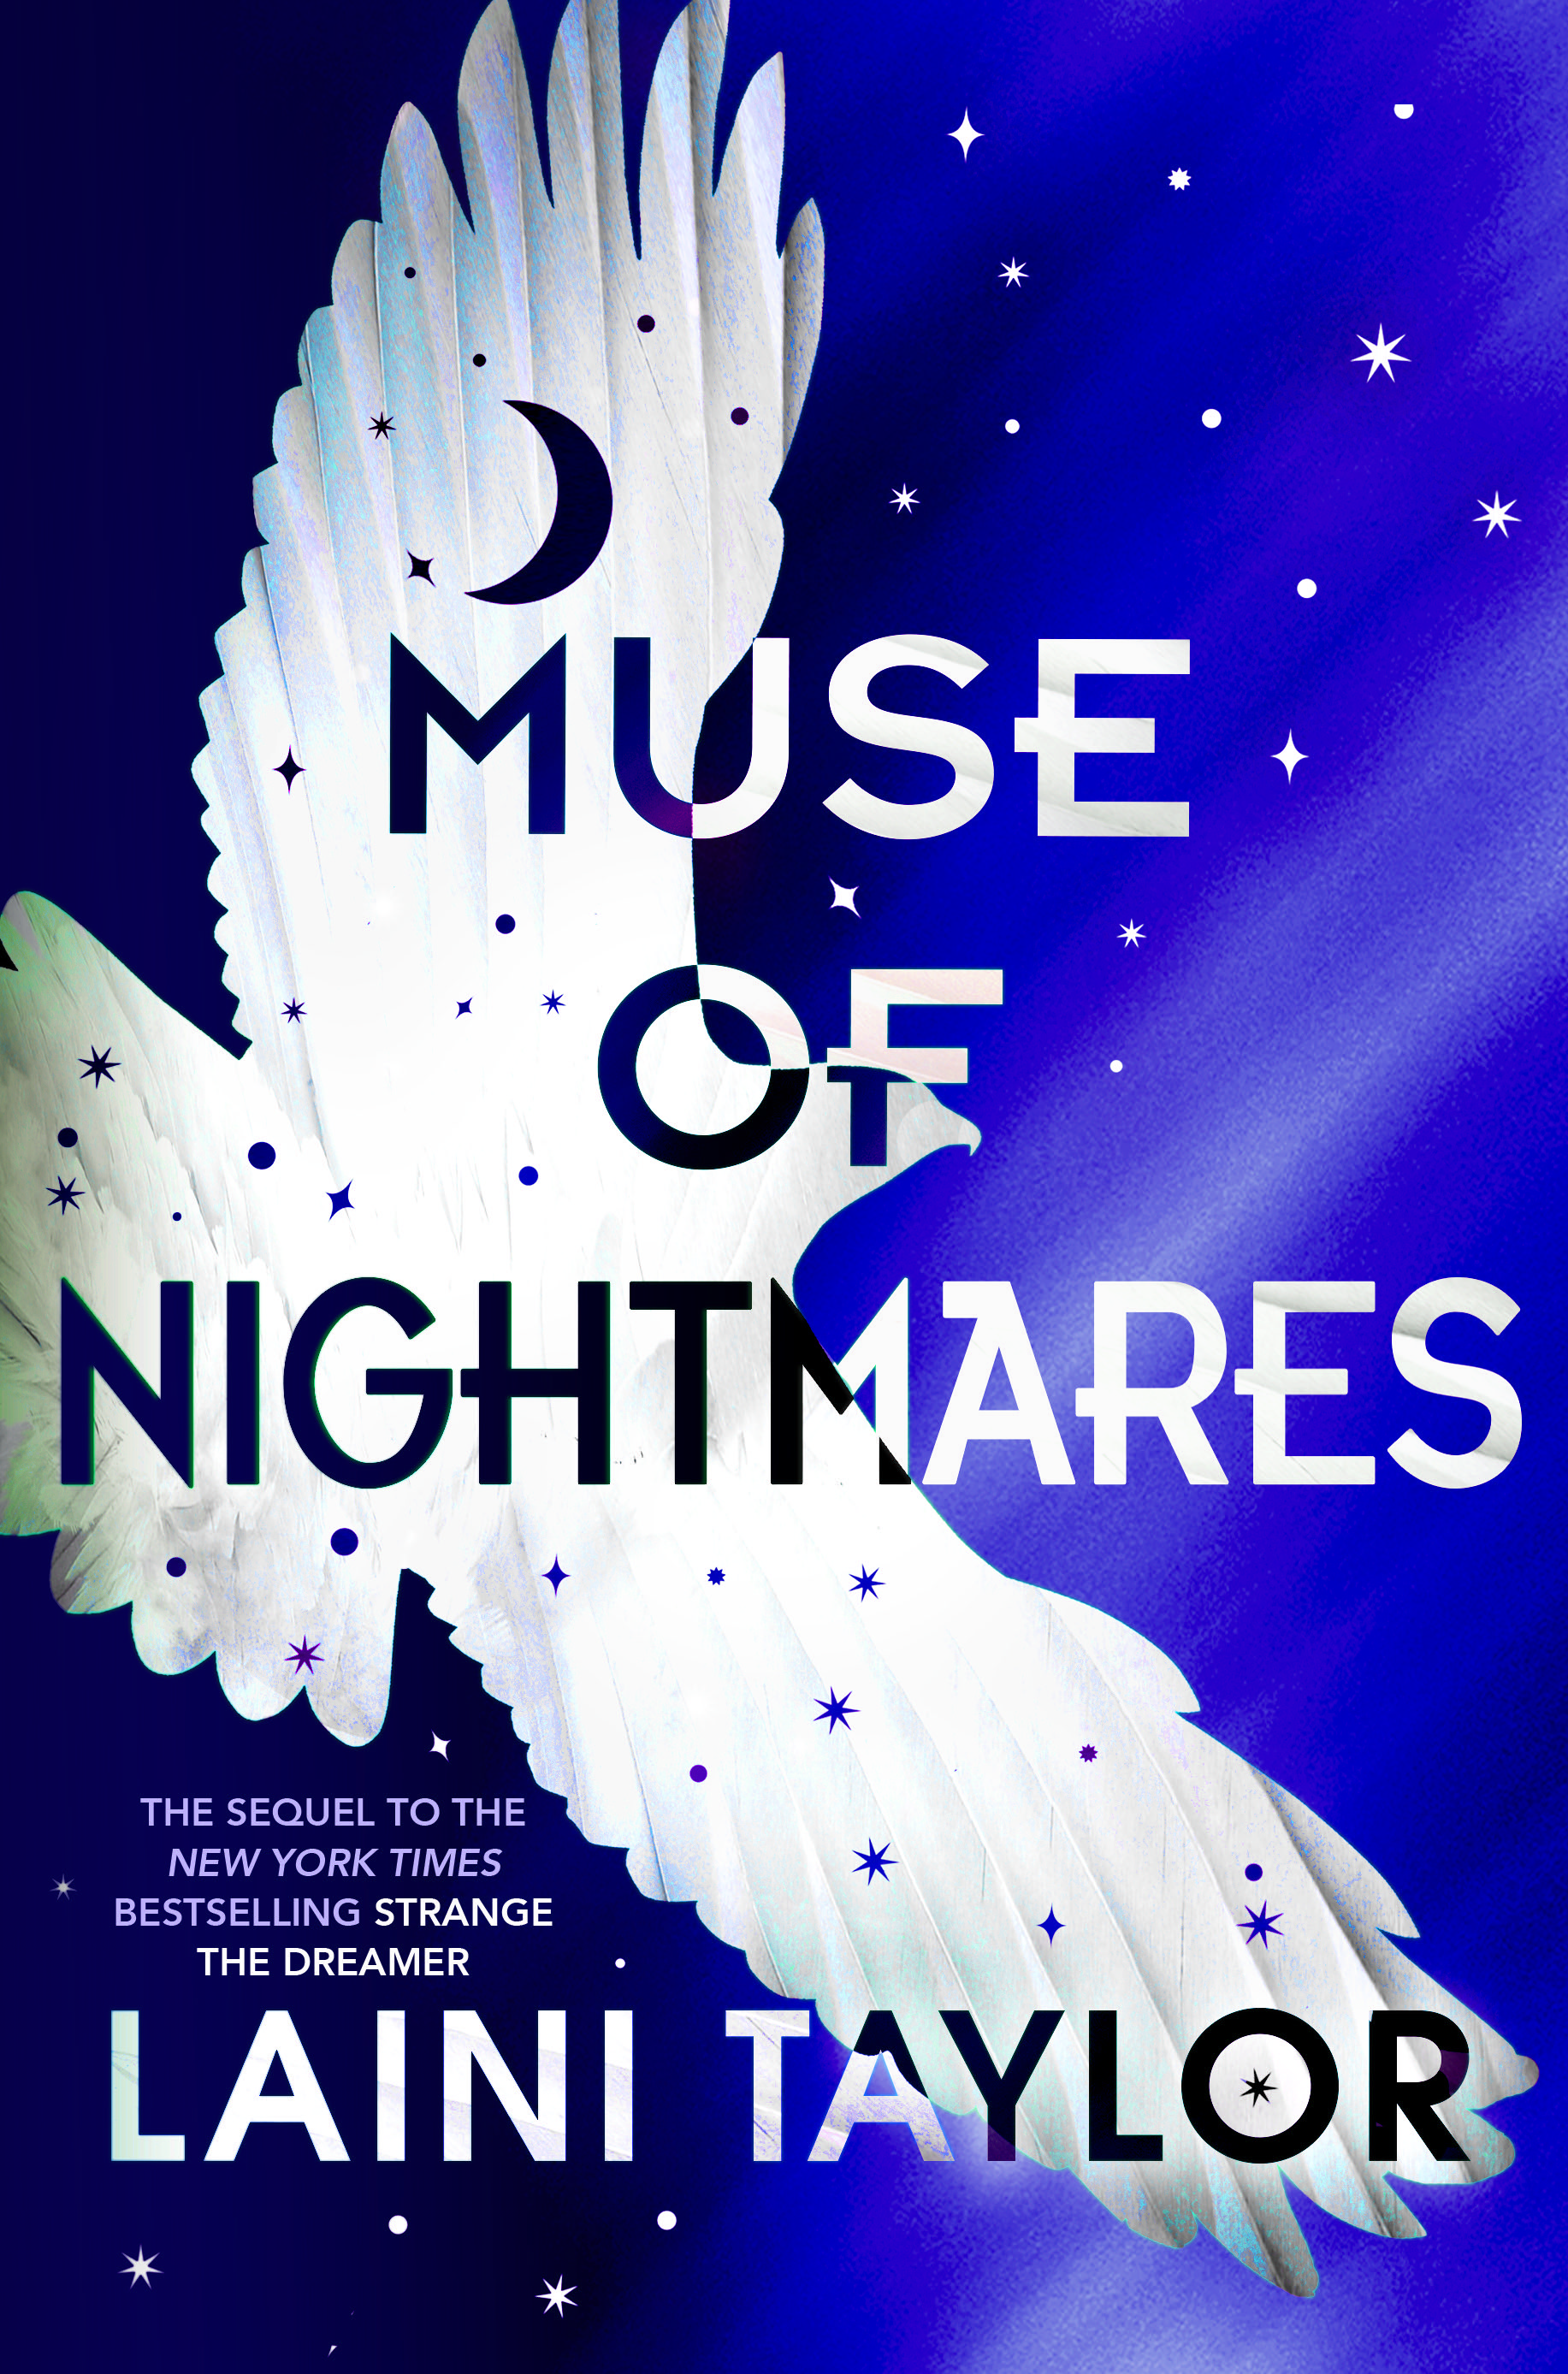 Muse of Nightmares: Second in the Epic Fantasy Series Strange the Dreamer